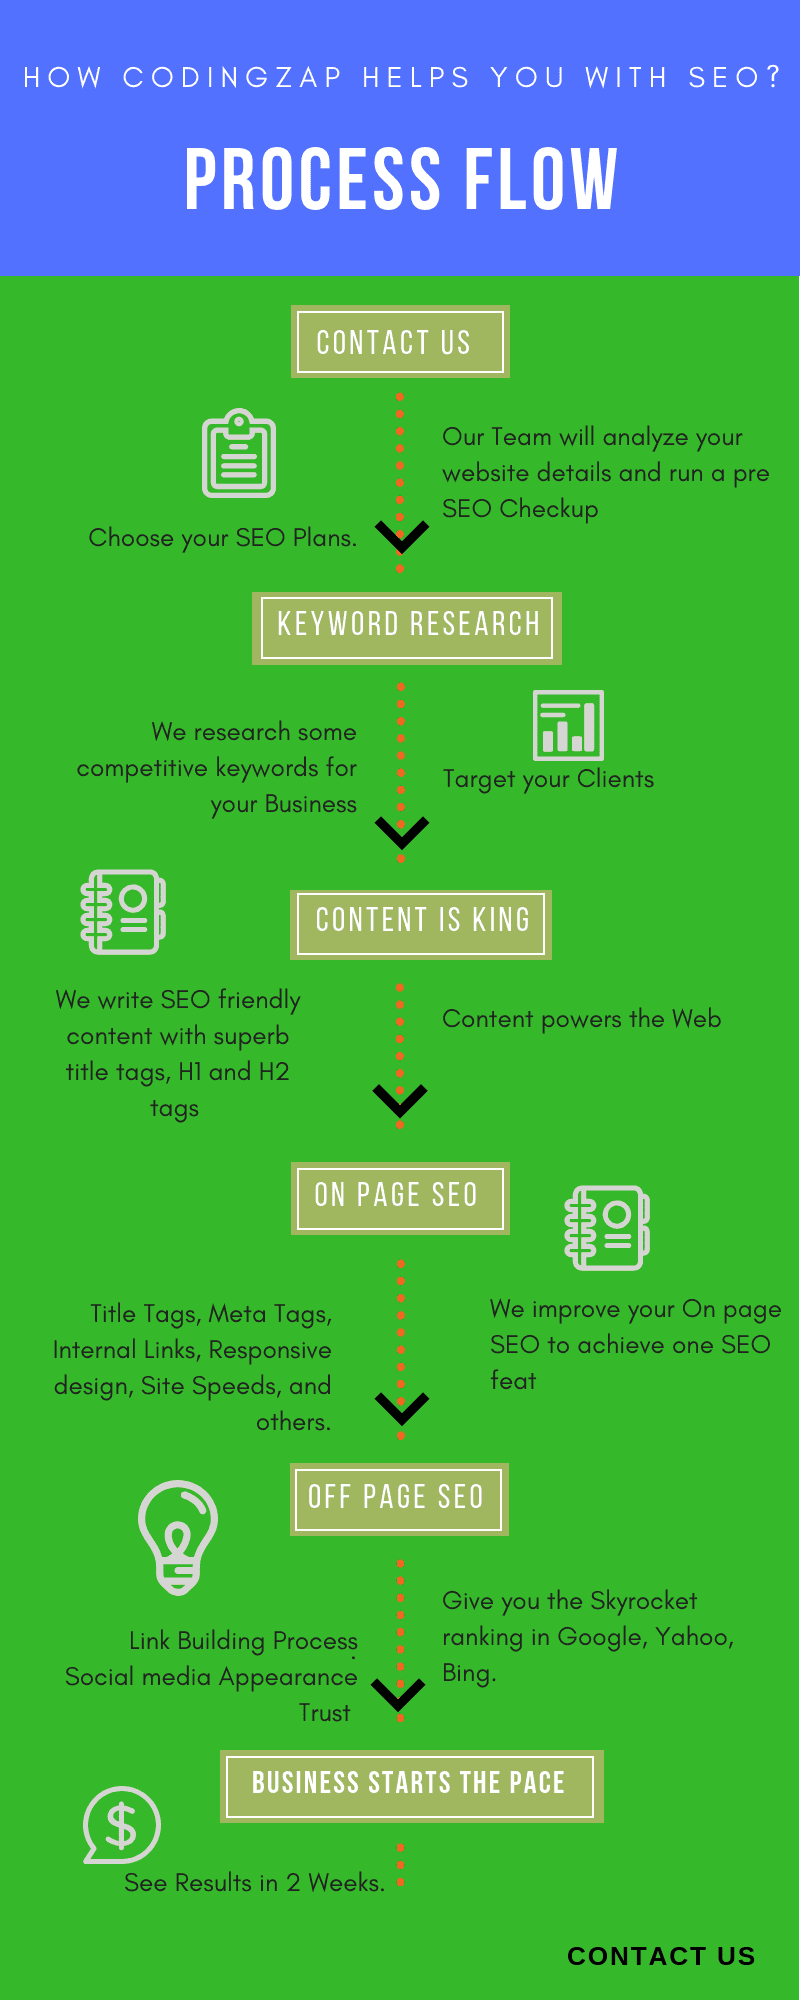 Affordable SEO Services - Process flow